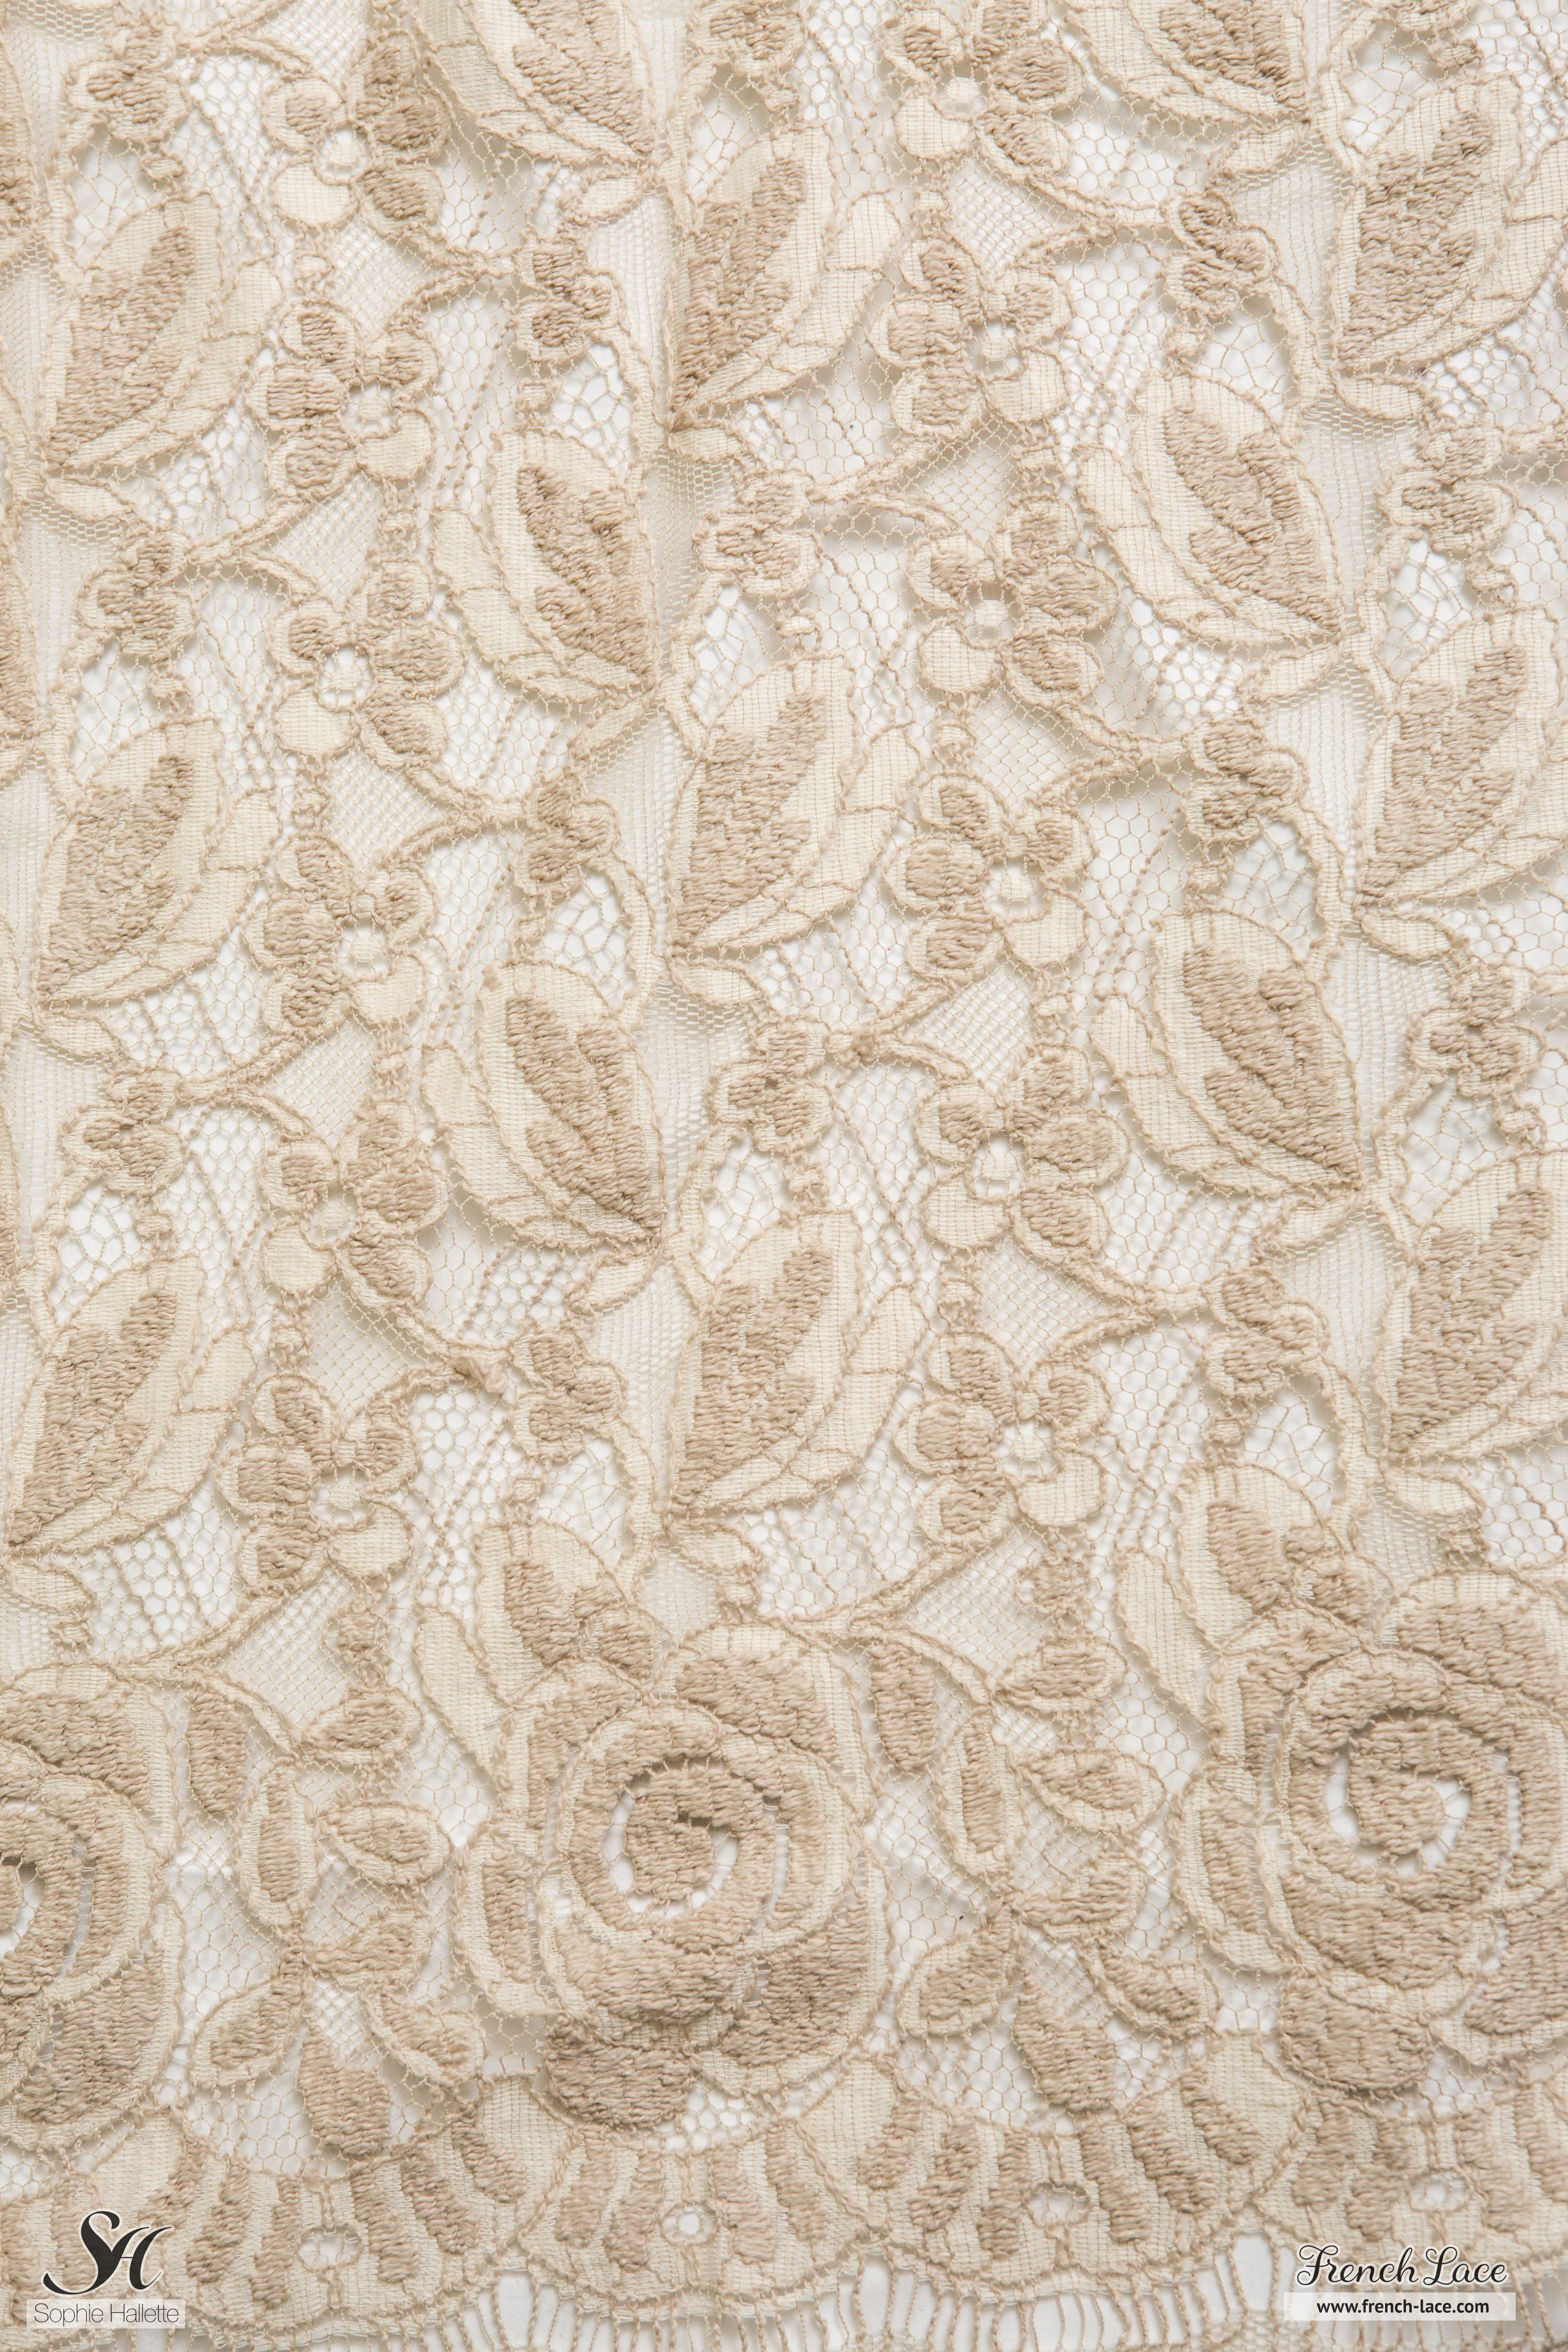 Inverno 90 Beige Sable French Lace Online Shop